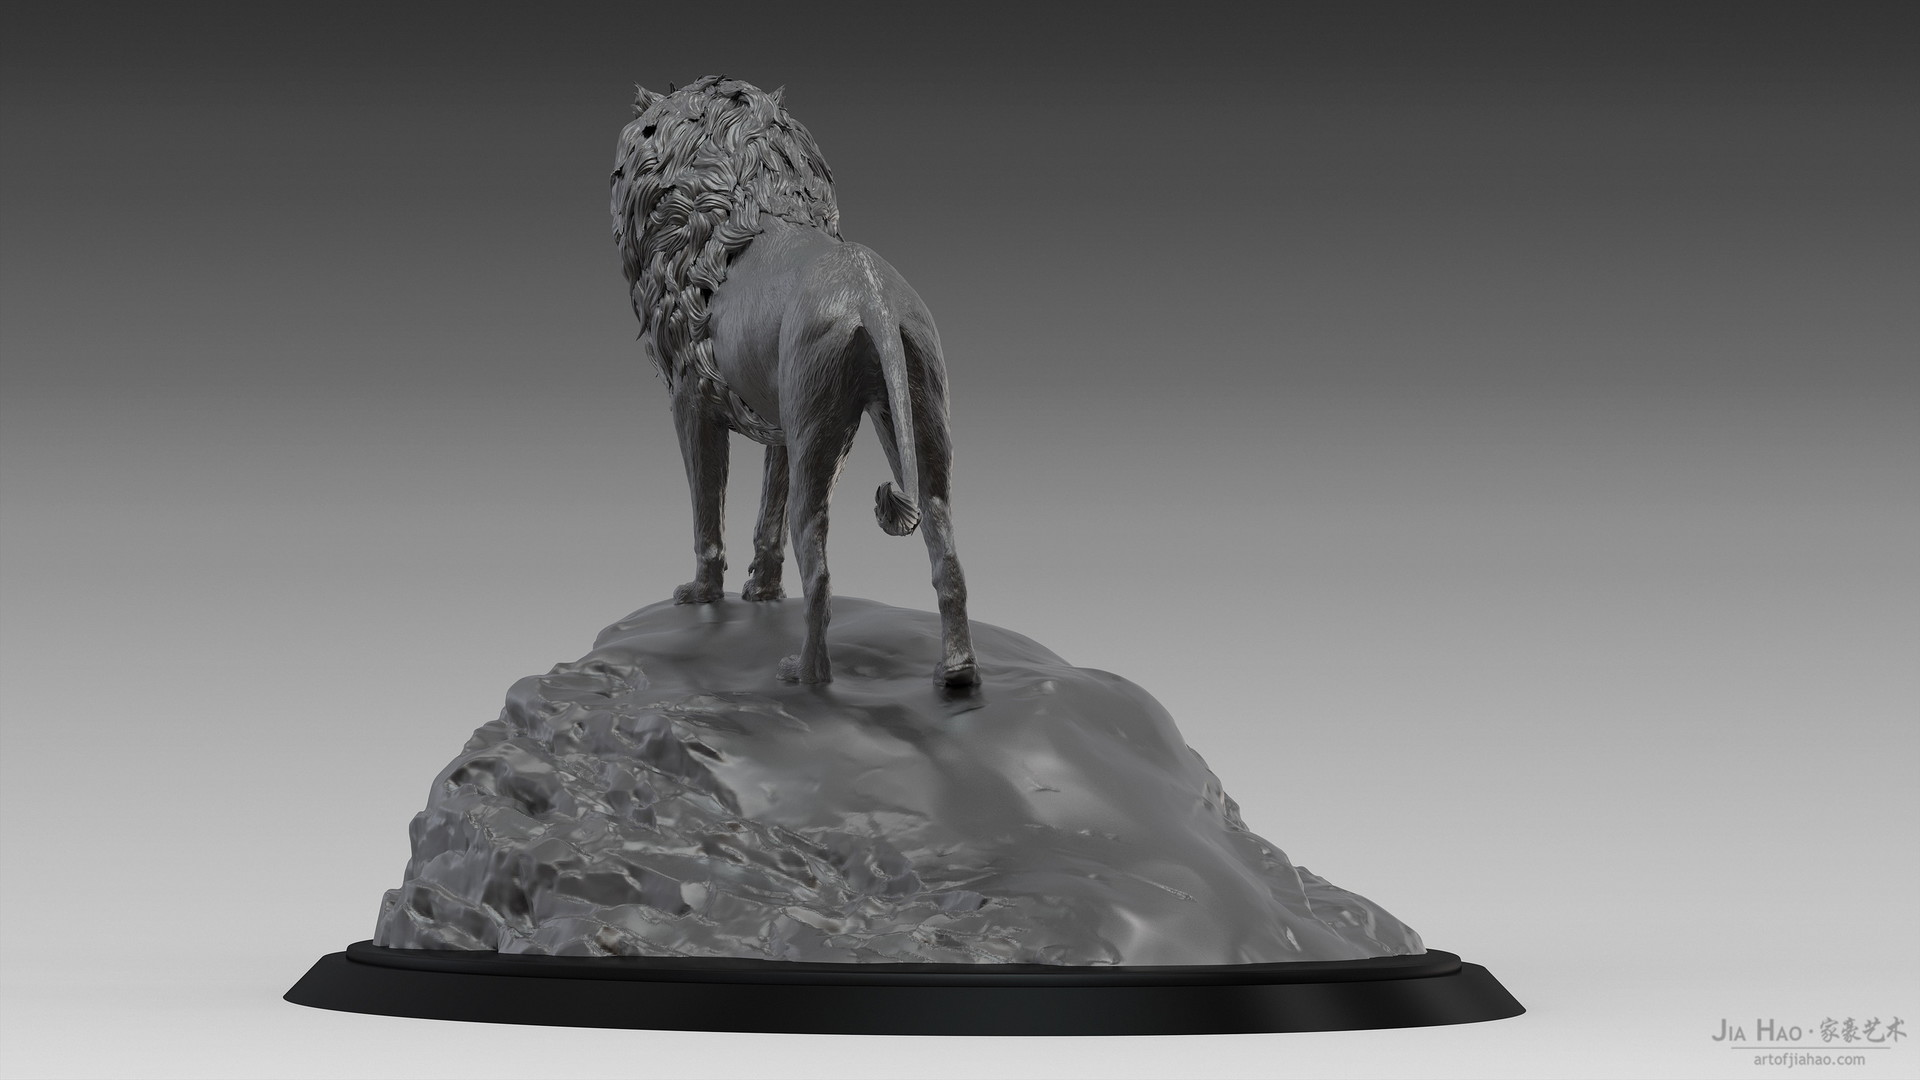 Jia hao lion digitalsculptureb 04